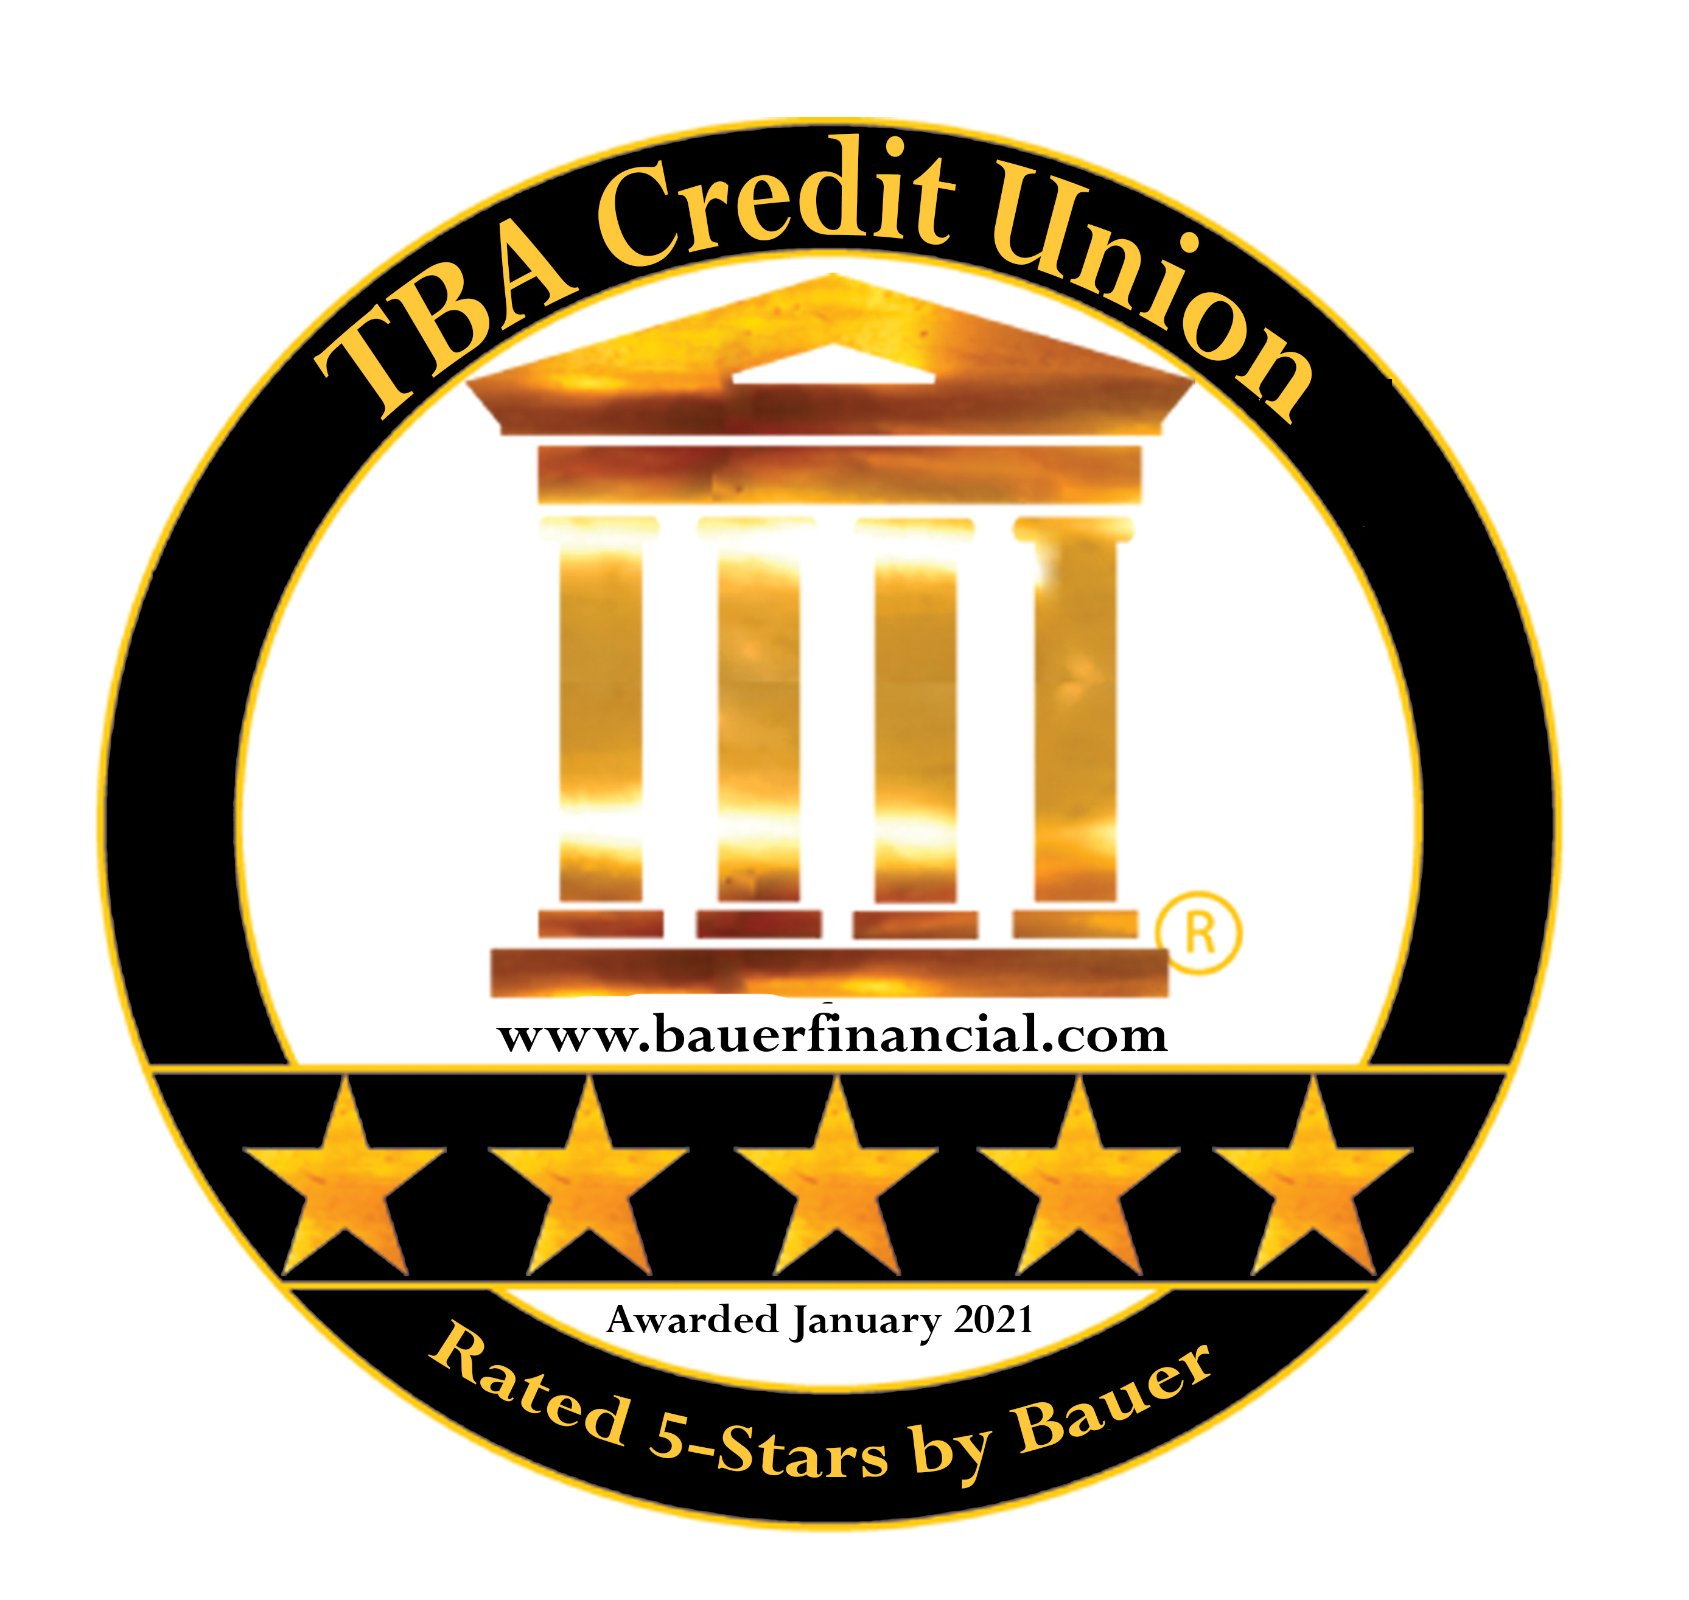 TBA Credit Union 5-Star Bauer Financial Rating. January 2021.